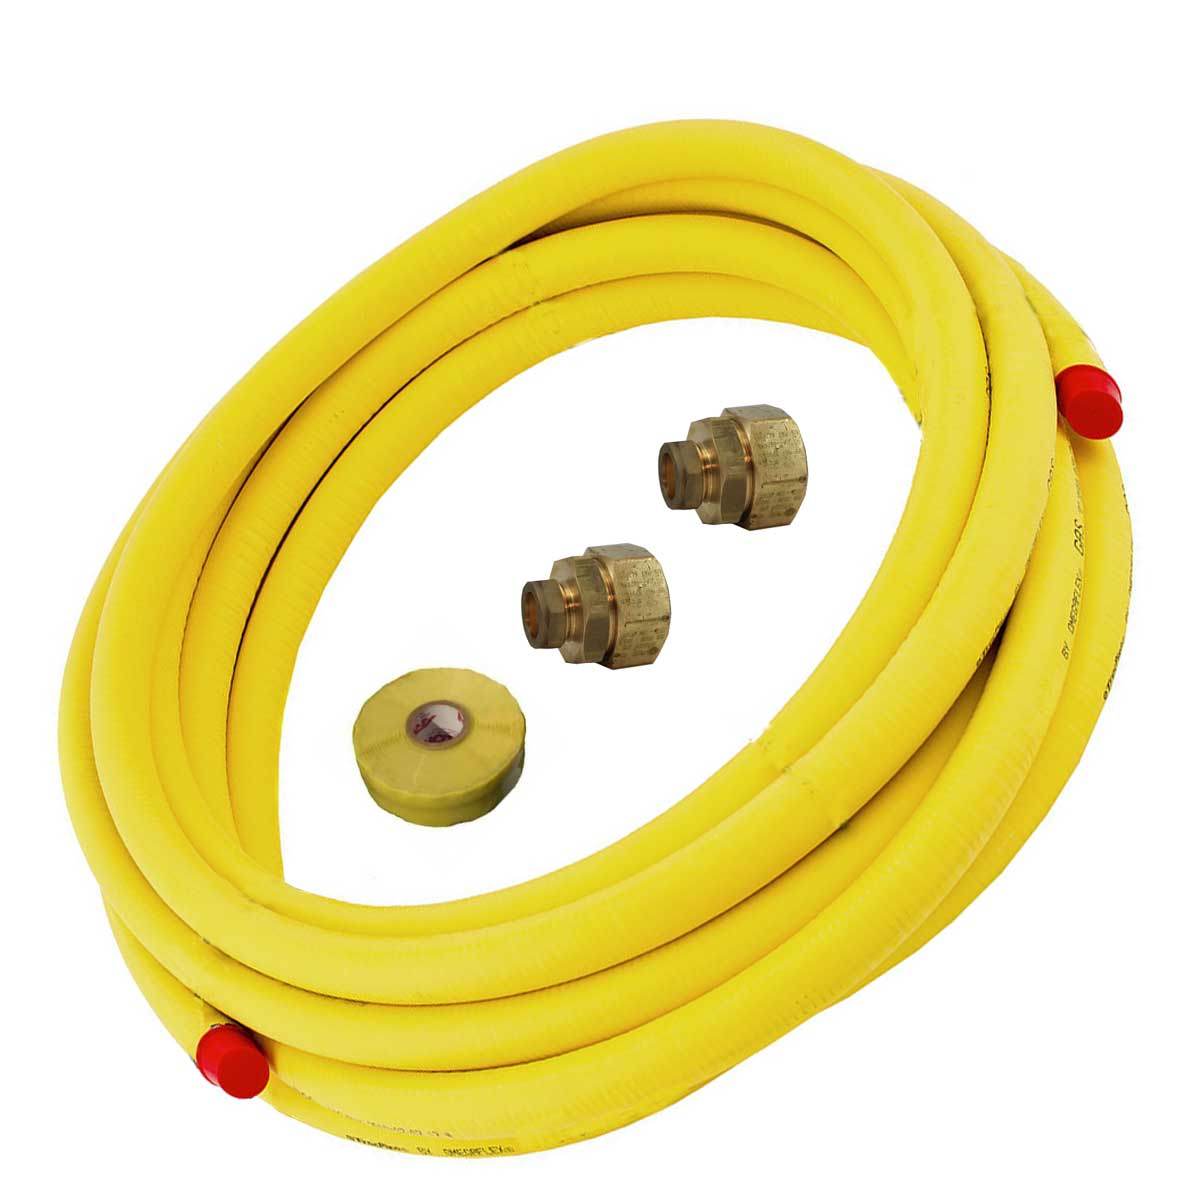 TracPipe 10m Flexible Gas Pipe Fittings and Tape Pack 15mm